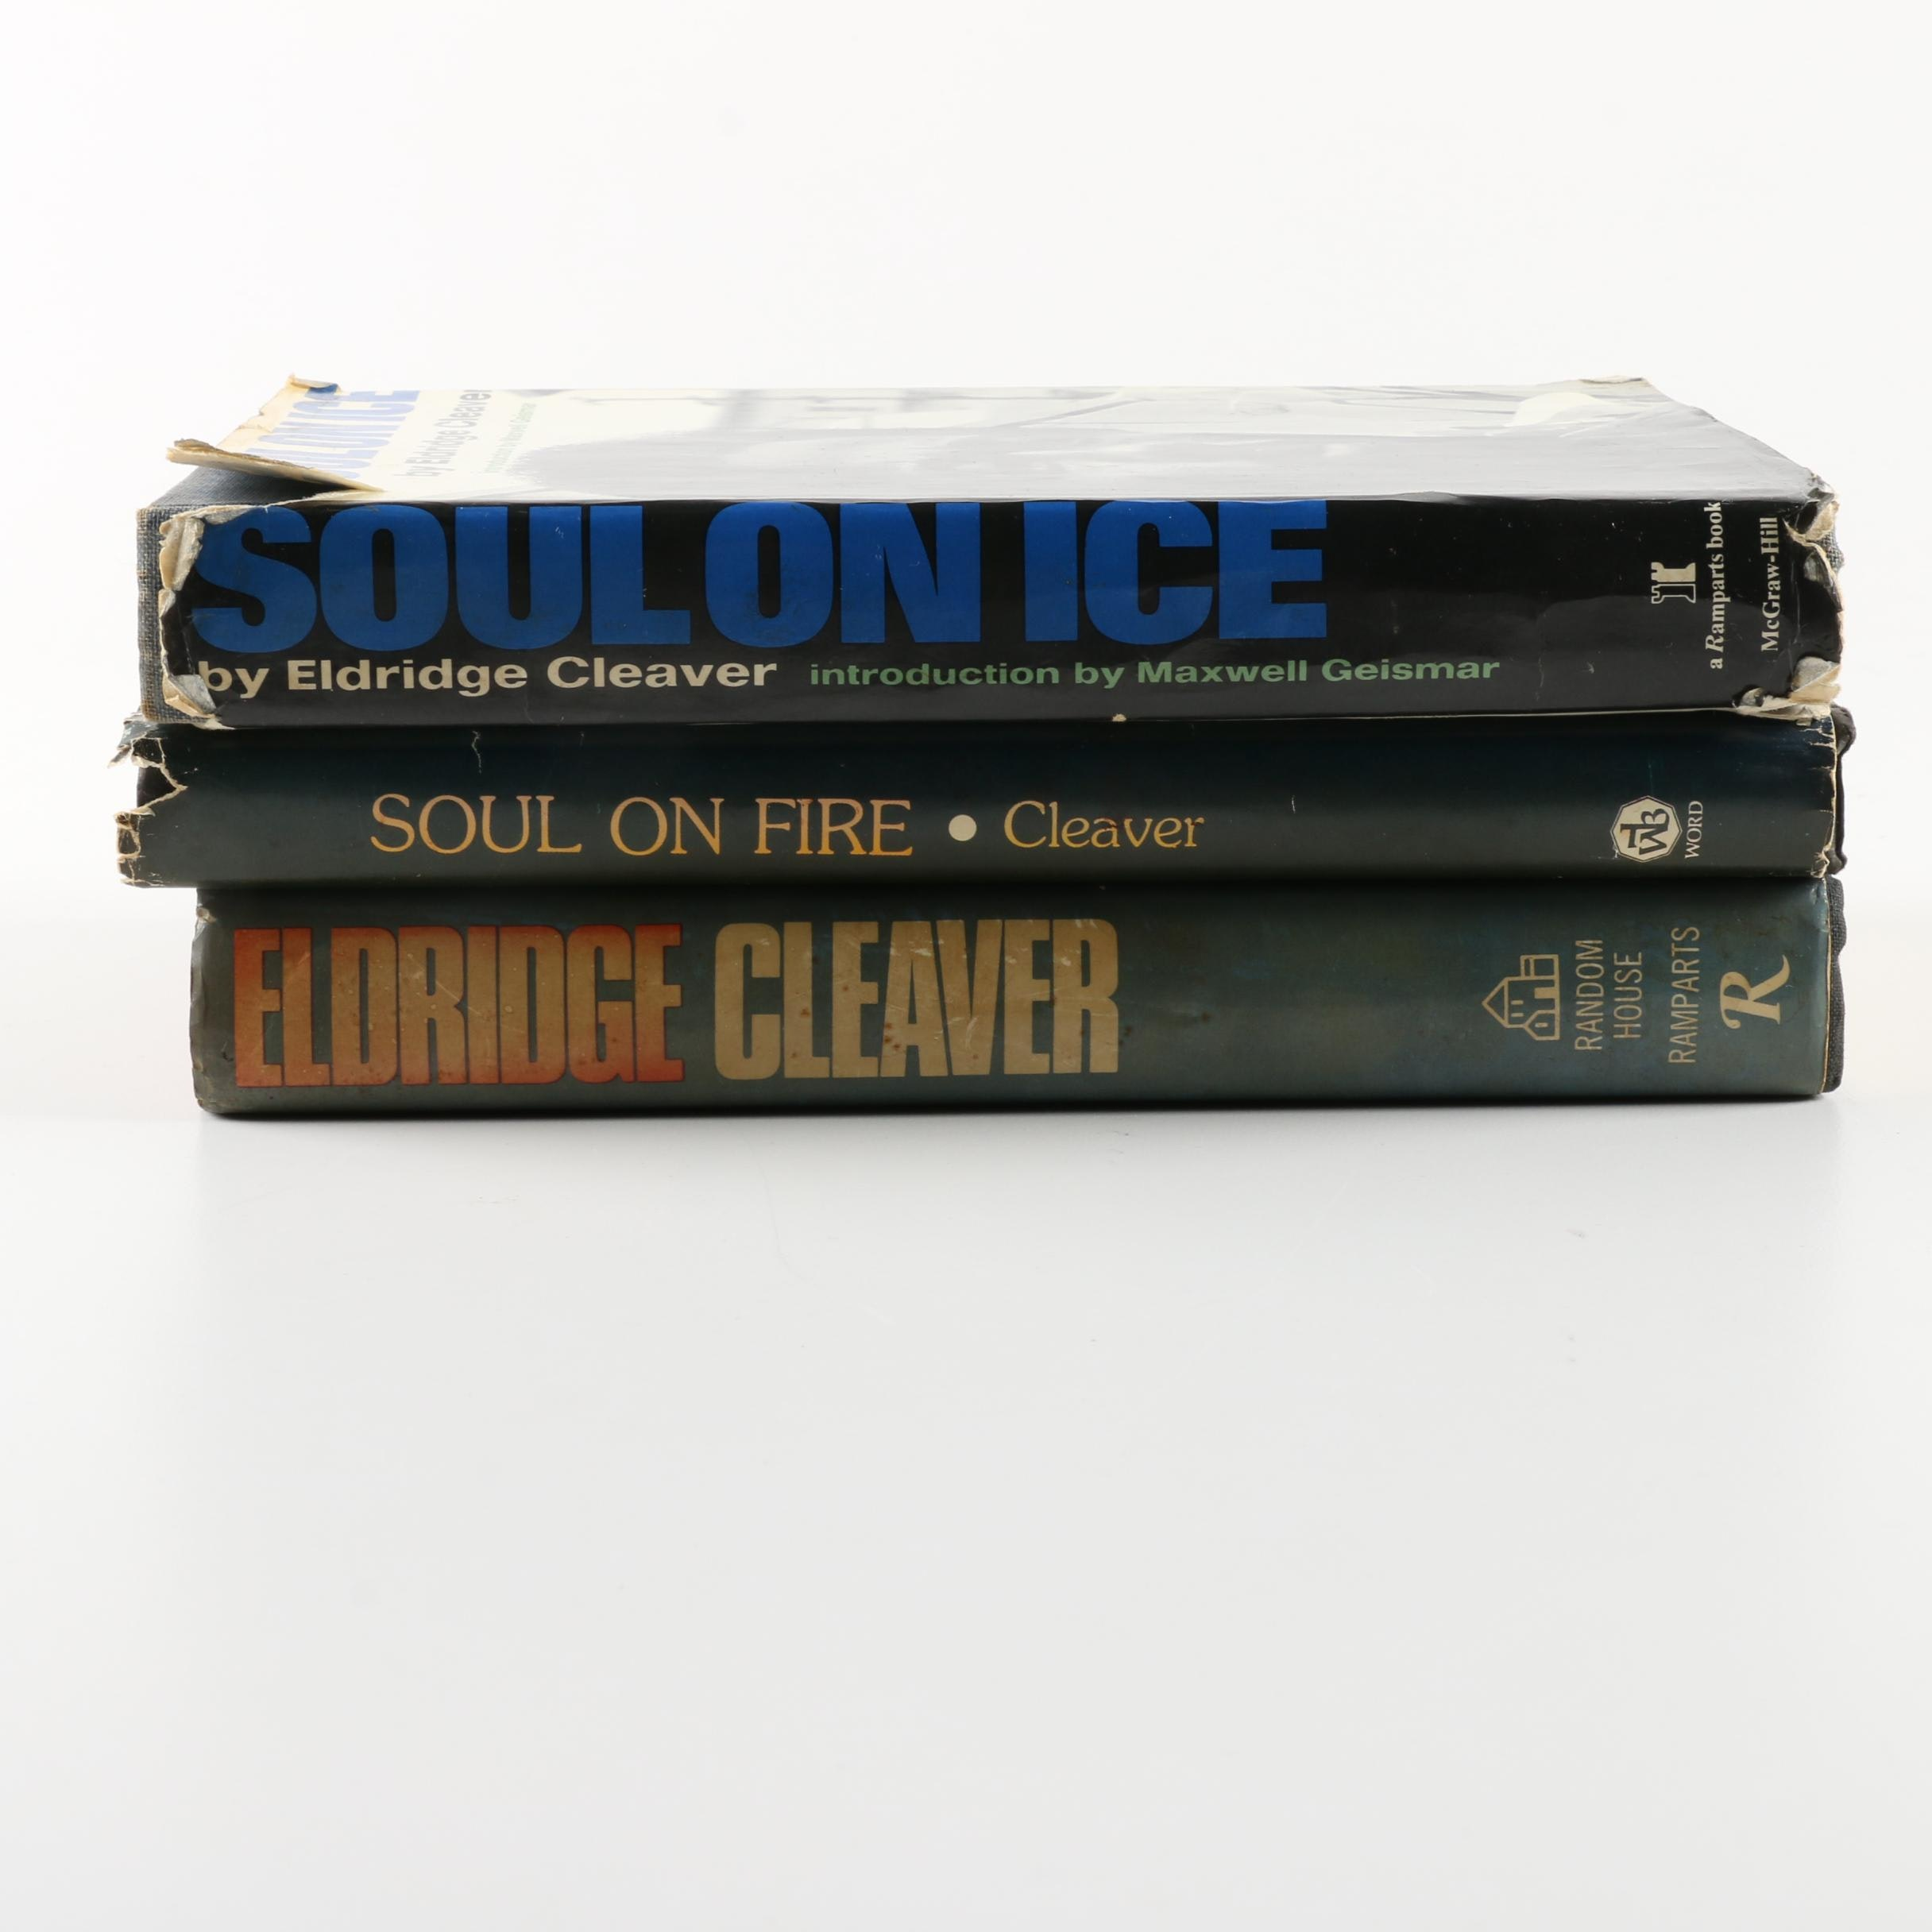 Collection of Hardcover Books by Eldridge Cleaver